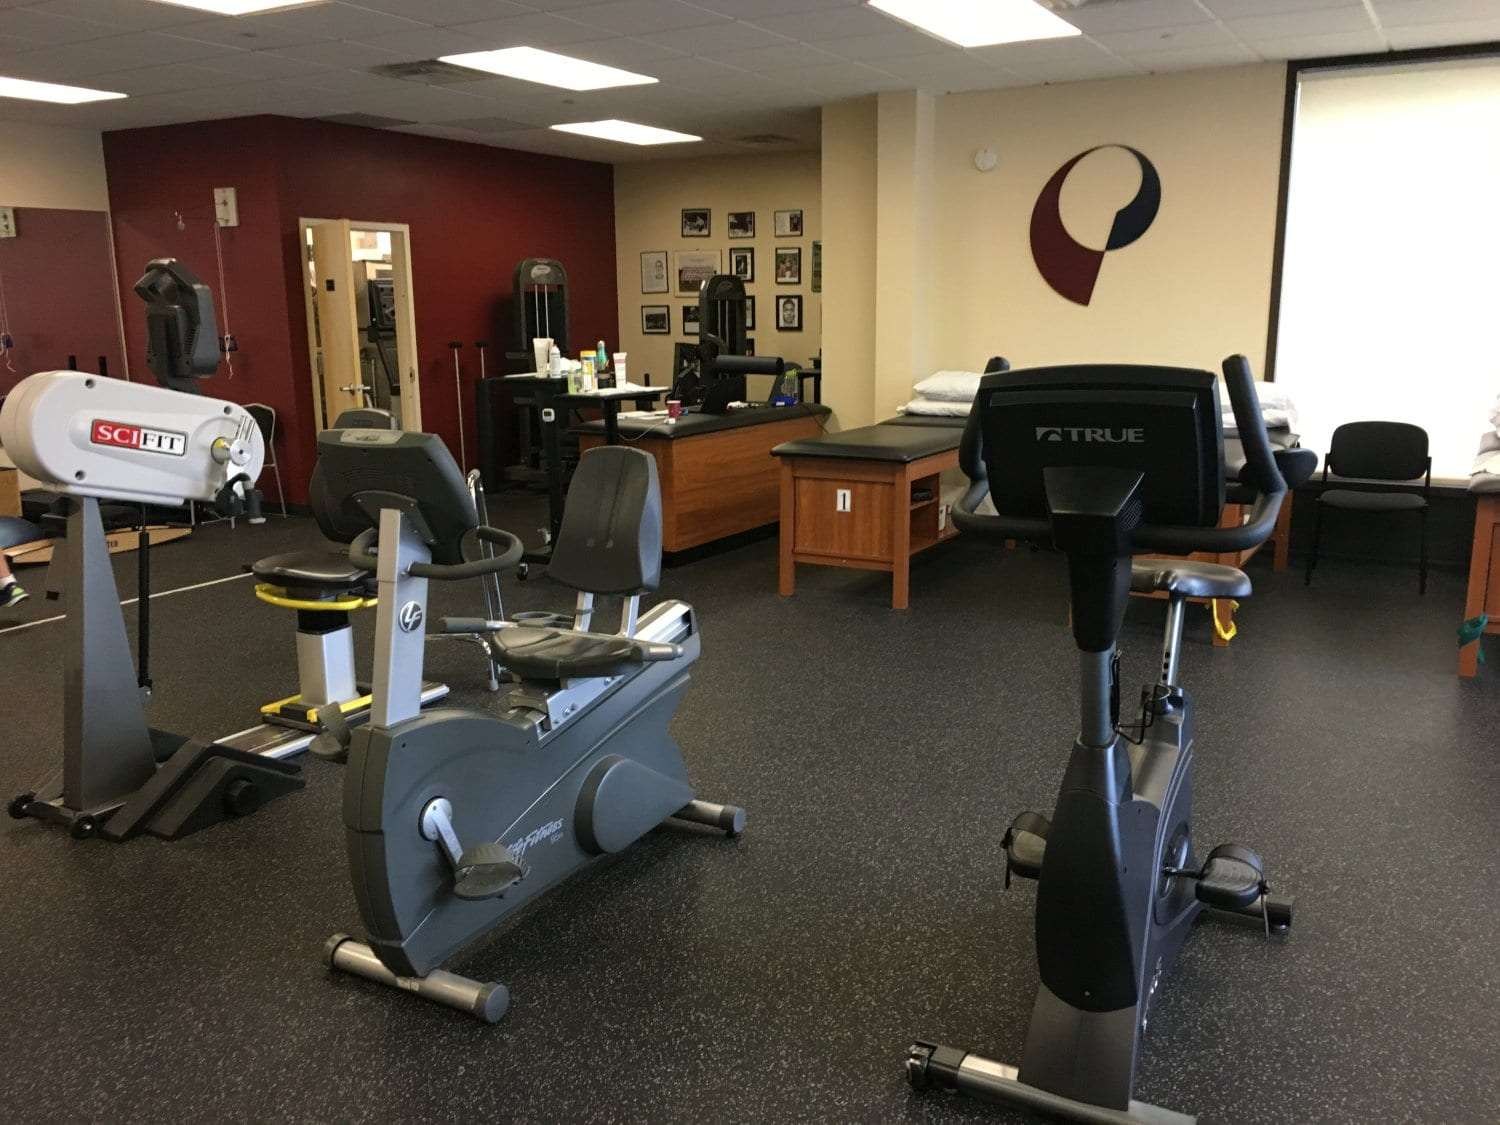 Here is an image of some of the equioment used in physical therapy at our clinic in Mahwah, New Jersey.